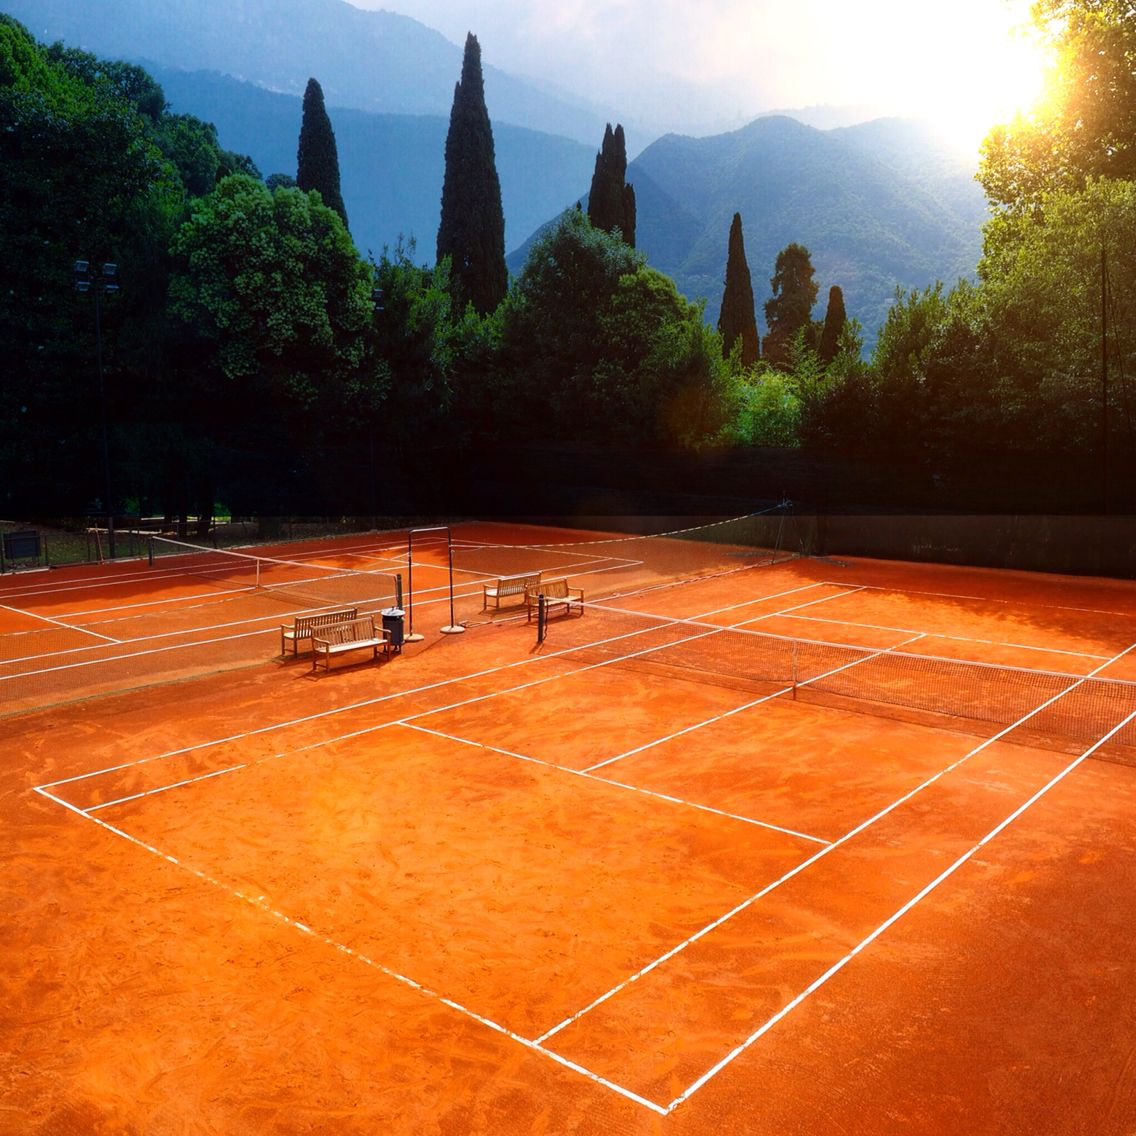 This Is Another Beautiful Clay Court In The World Tennis At Villa D Este Cernobbio Italy Tennis Life Tennis Art Tennis Court